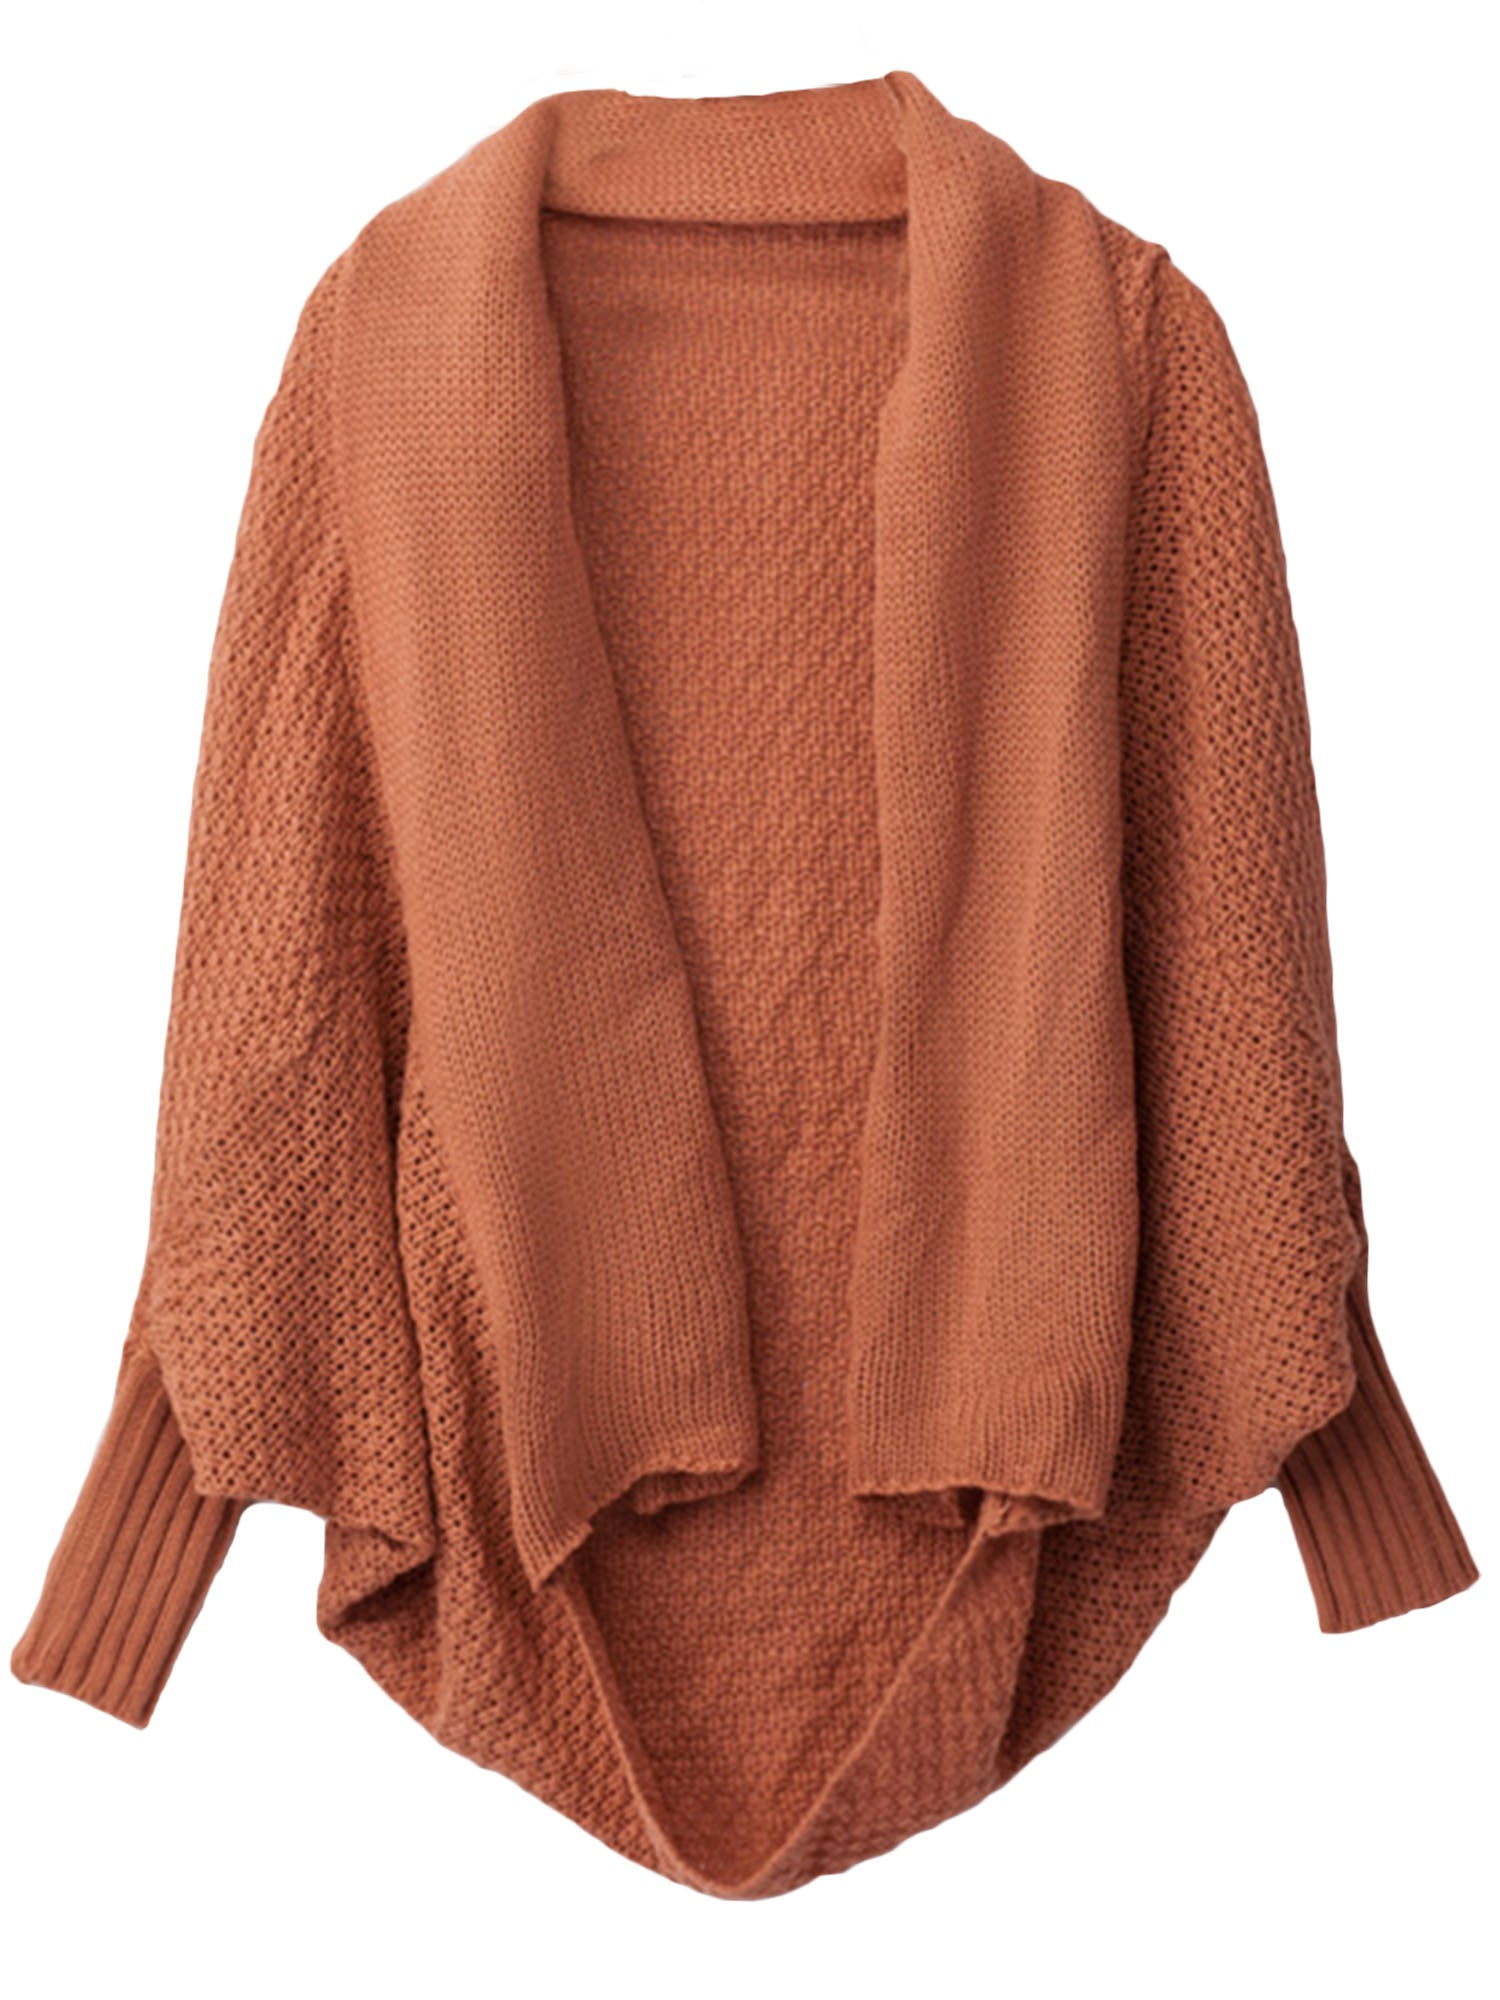 'Ruby' Dolman OpenCardigan (4 Colors)